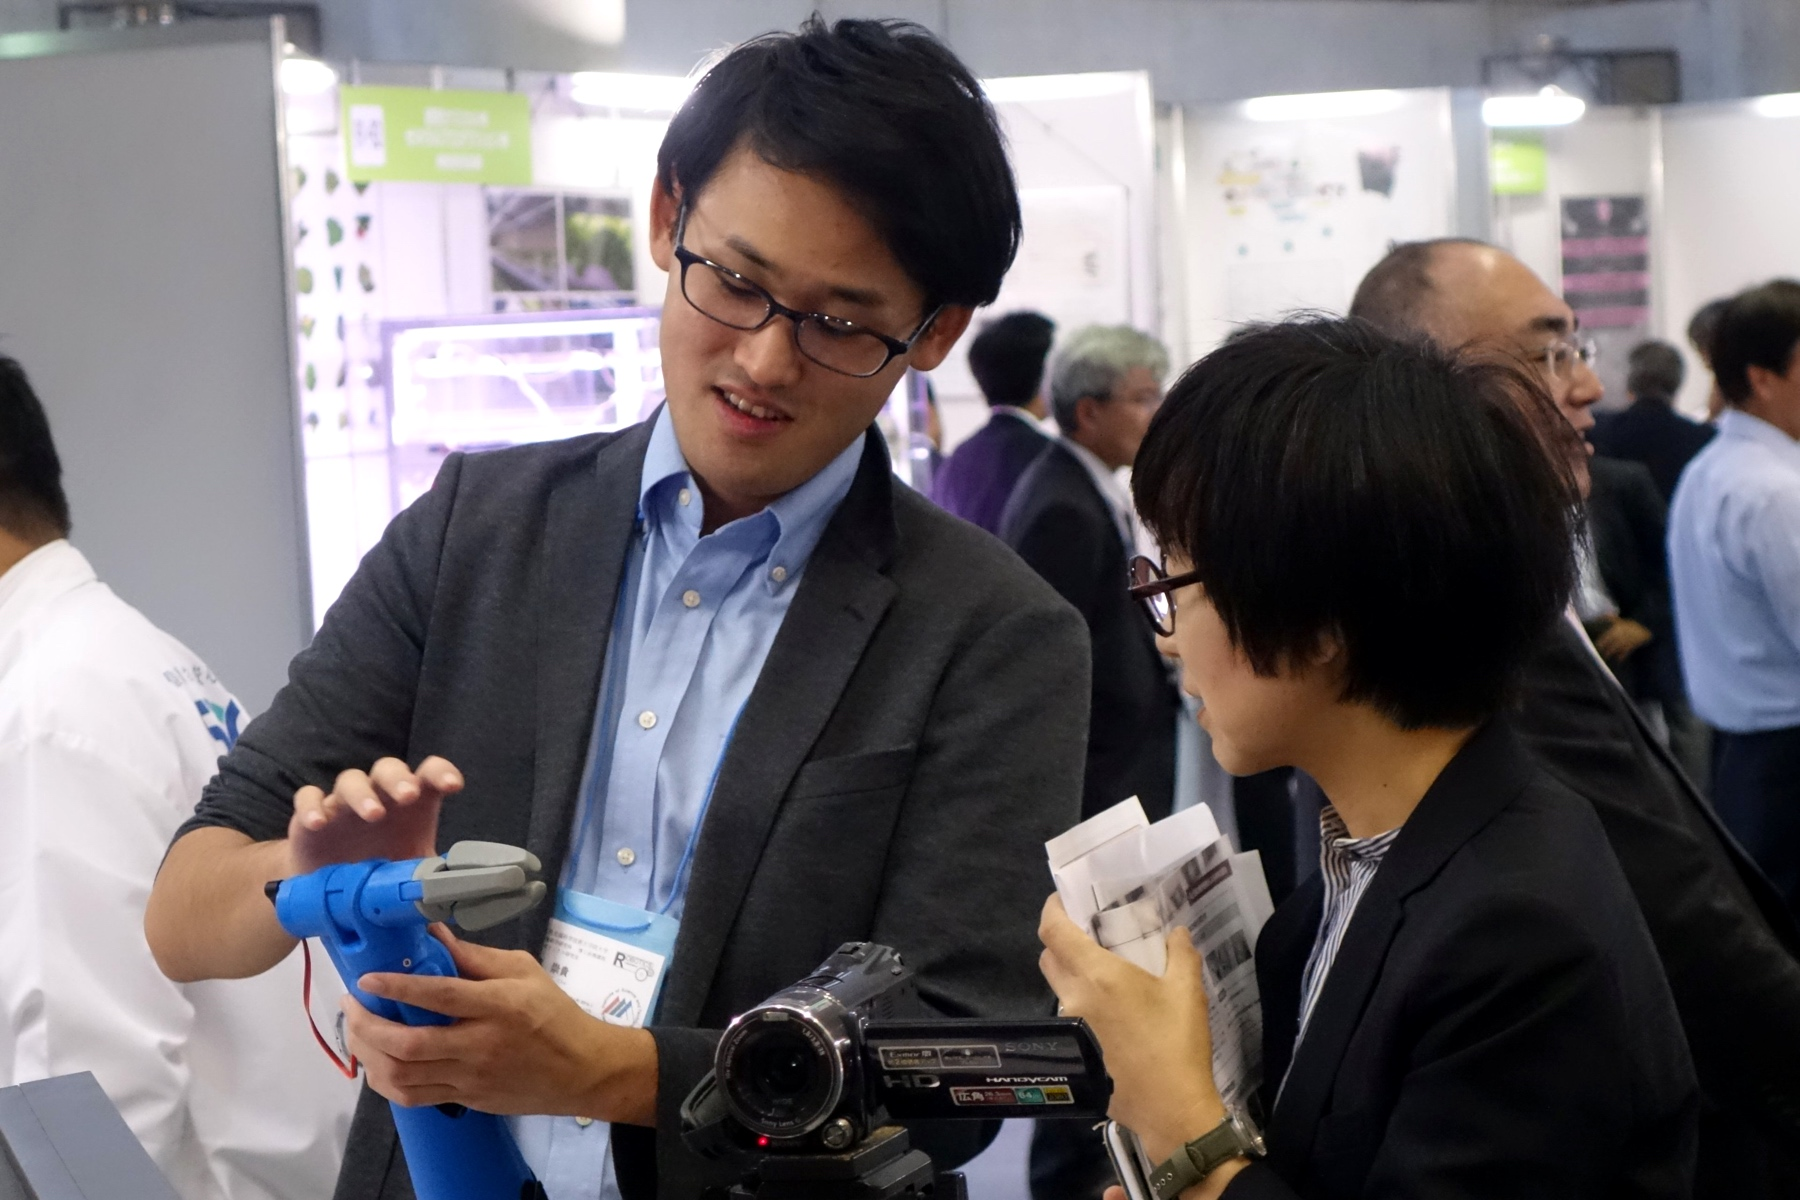 Master's student Sung-Gwi Cho explaining the 3D-printable prosthetic hand Finch designed for amputees.